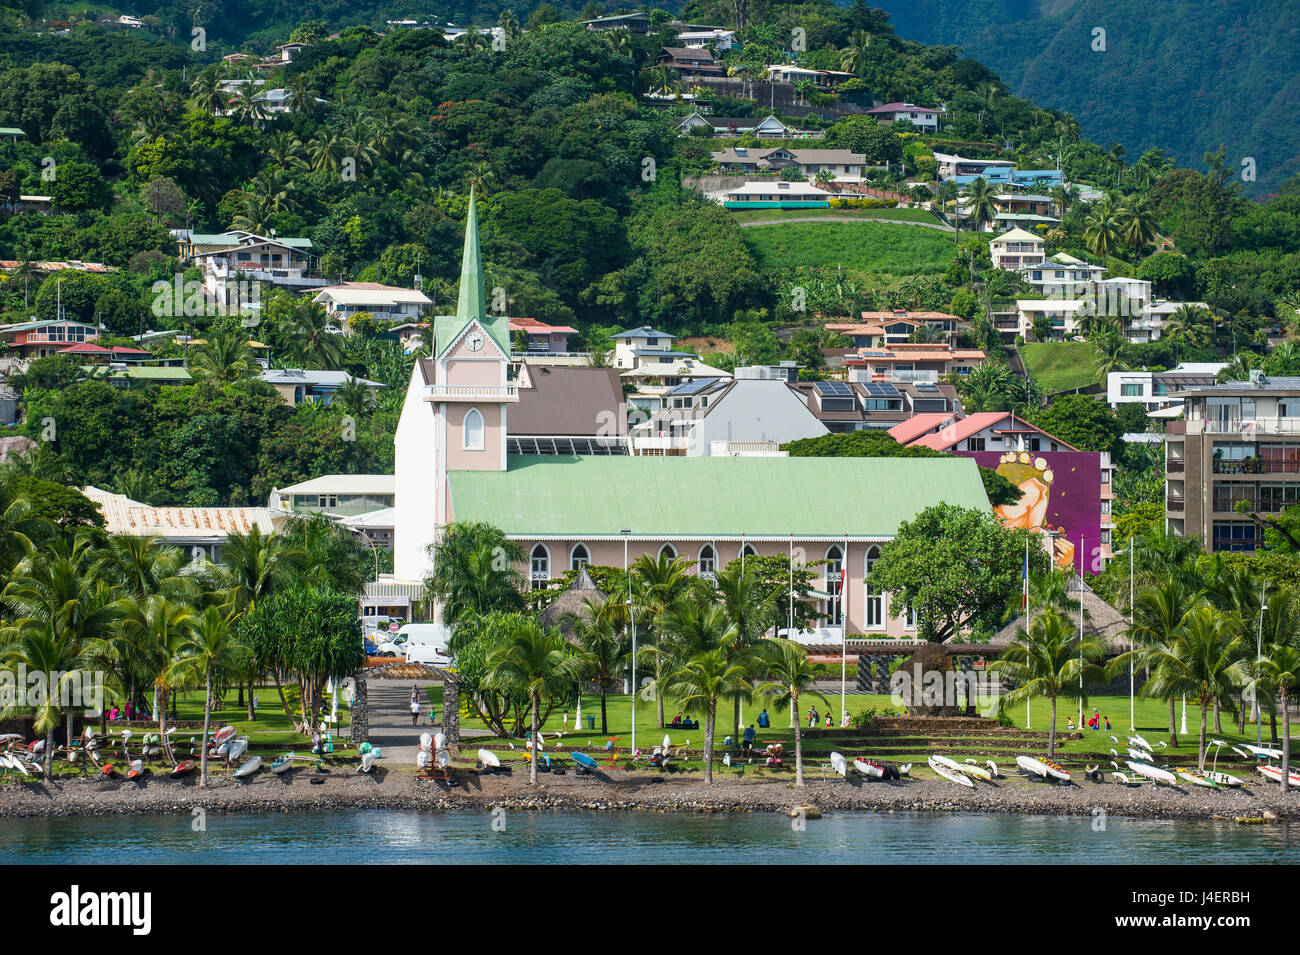 Downtown Papeete, Tahiti, Society Islands, French Polynesia, Pacific - Stock Image